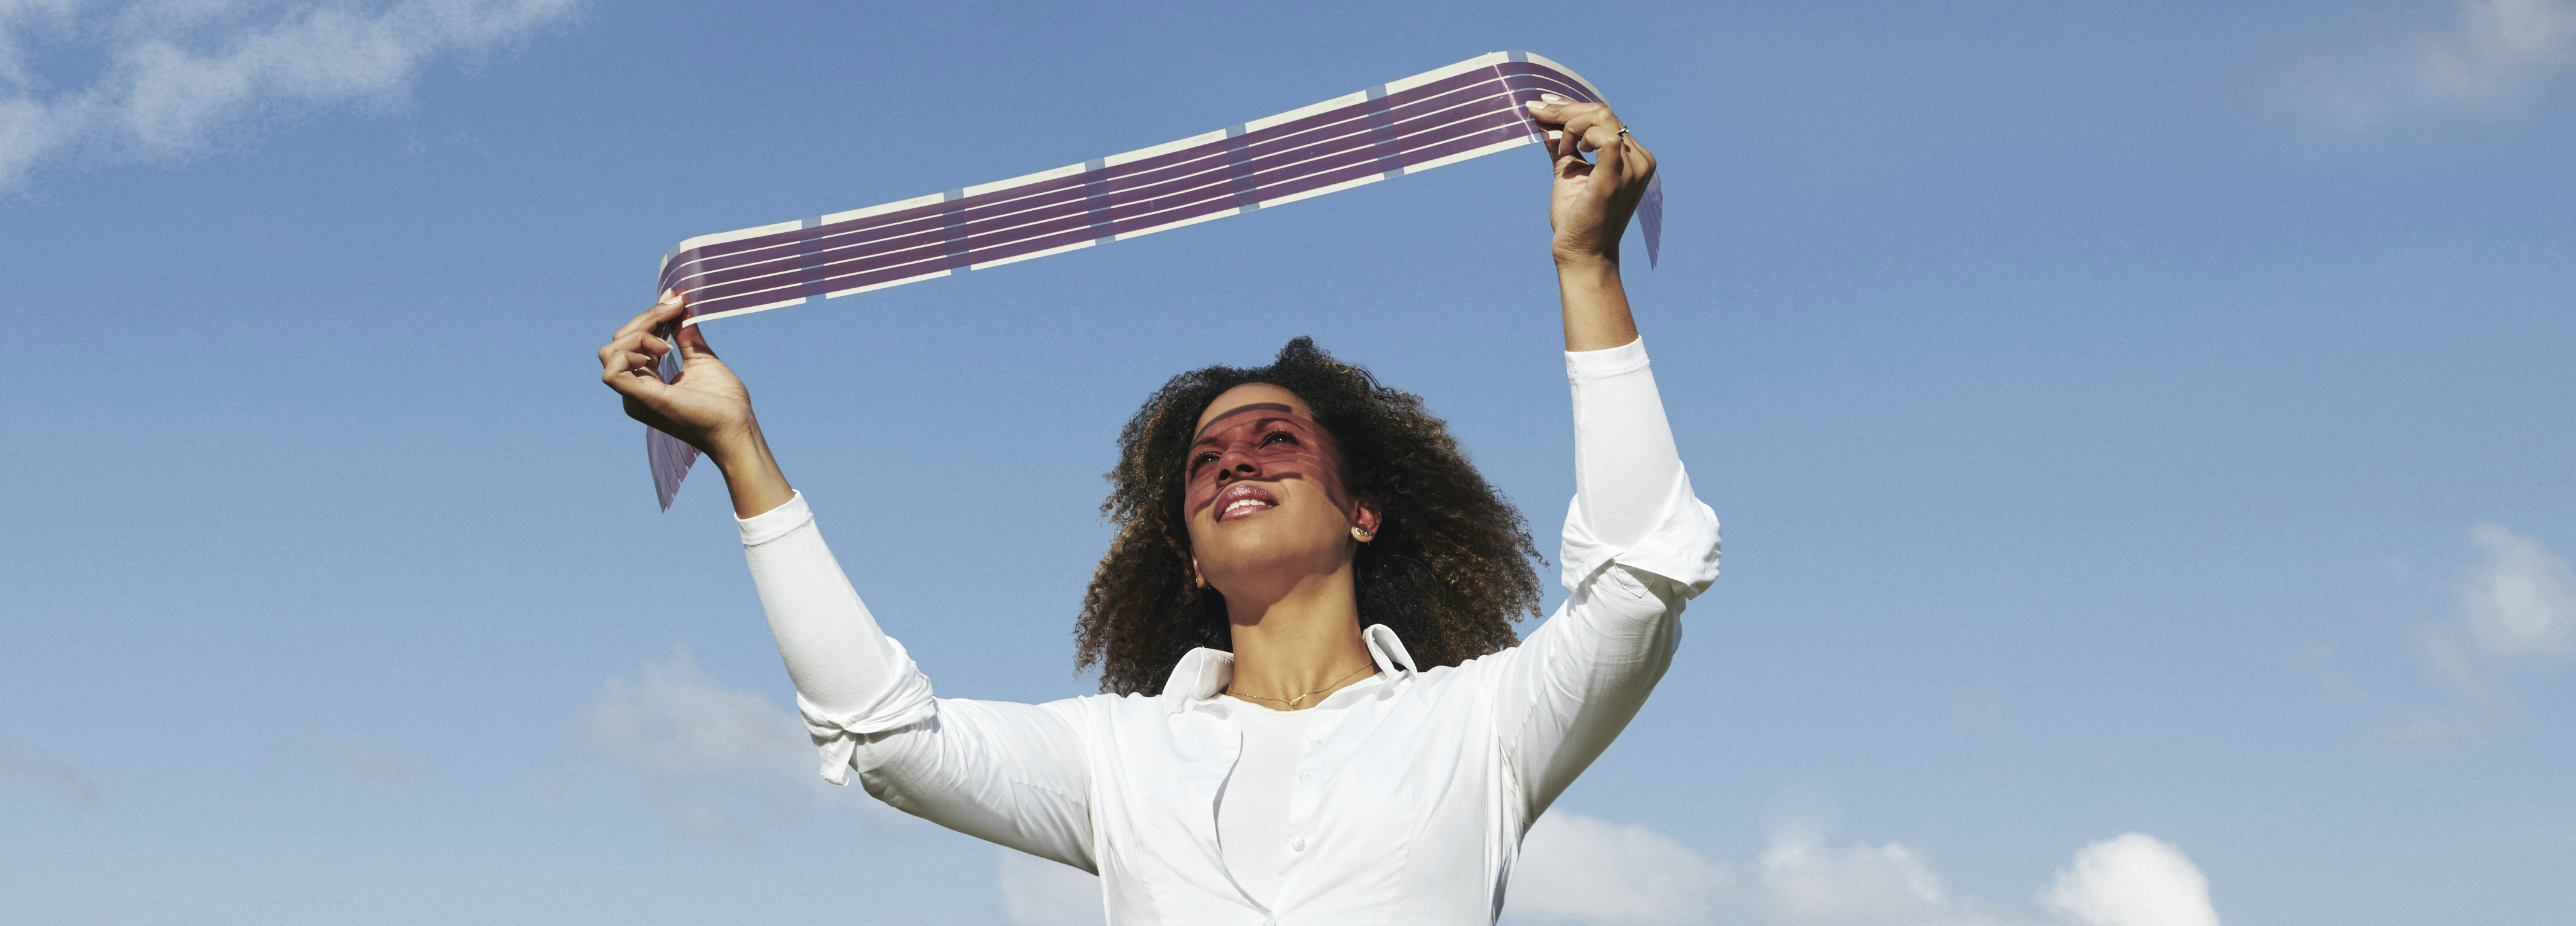 Oman holding up new printable solar cells that are flexible, light weight and are so thin that they can cover most surfaces.